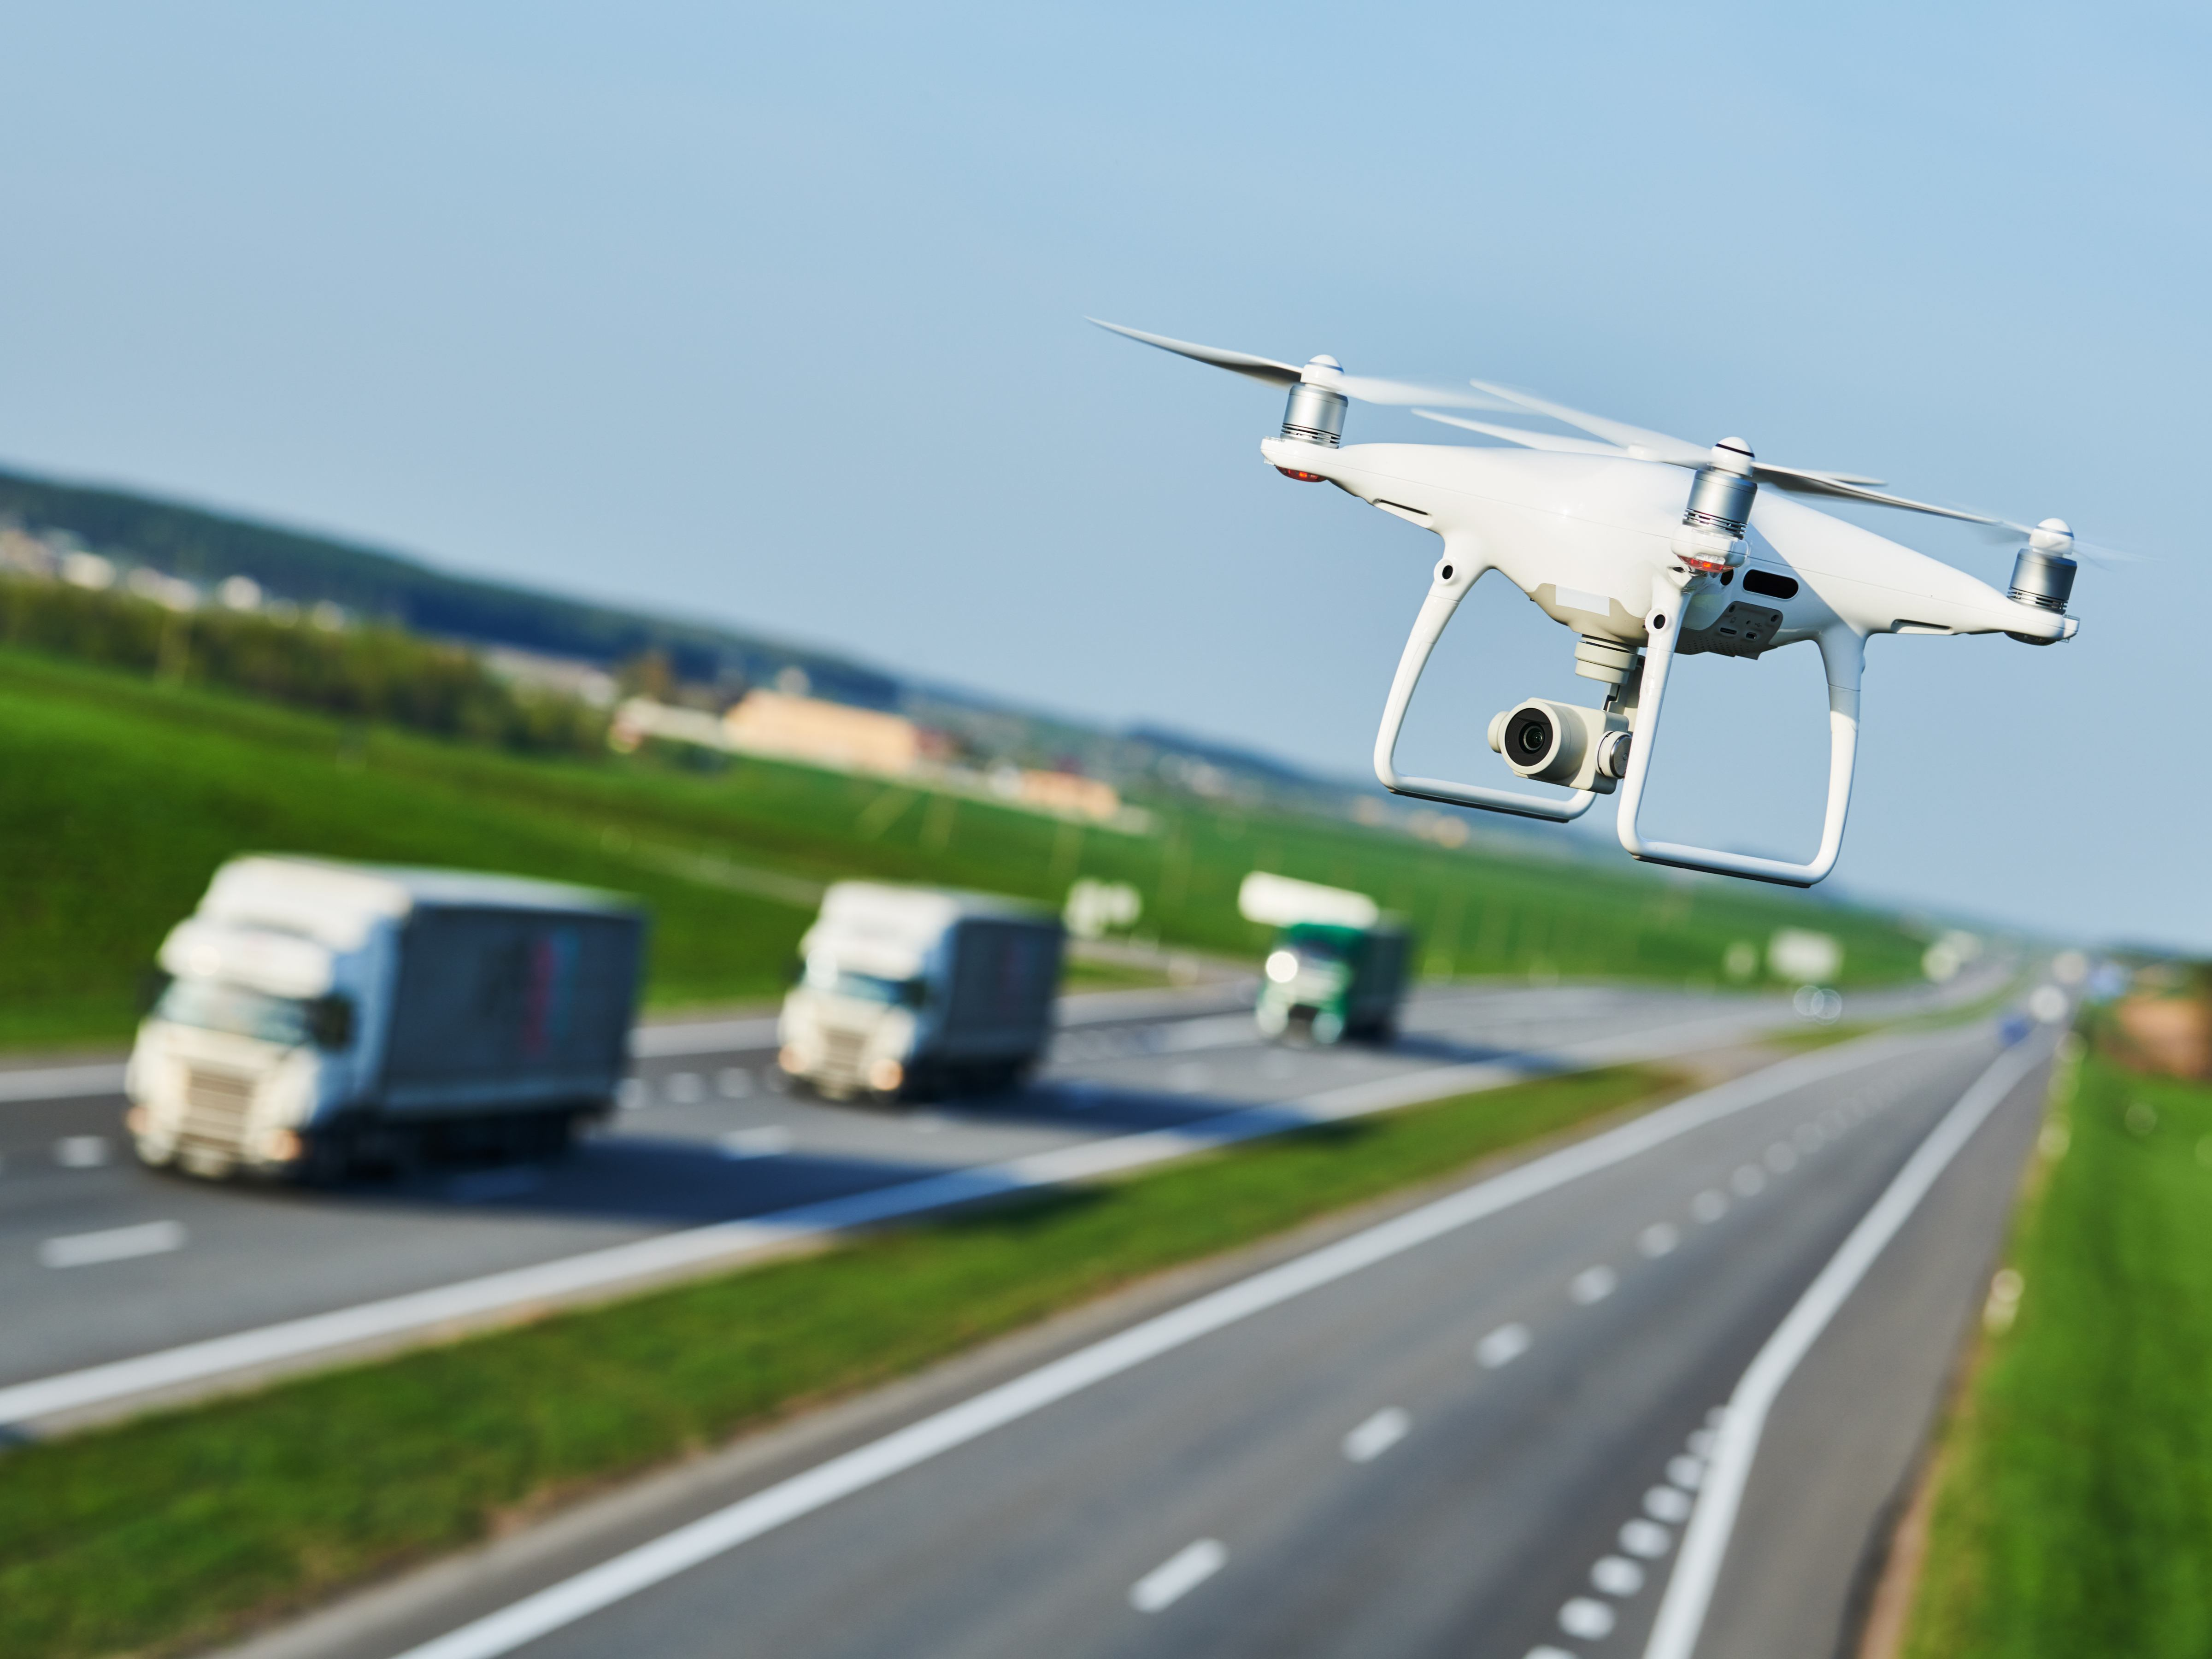 Look to the skies! Drones to monitor heavy vehicle compliance